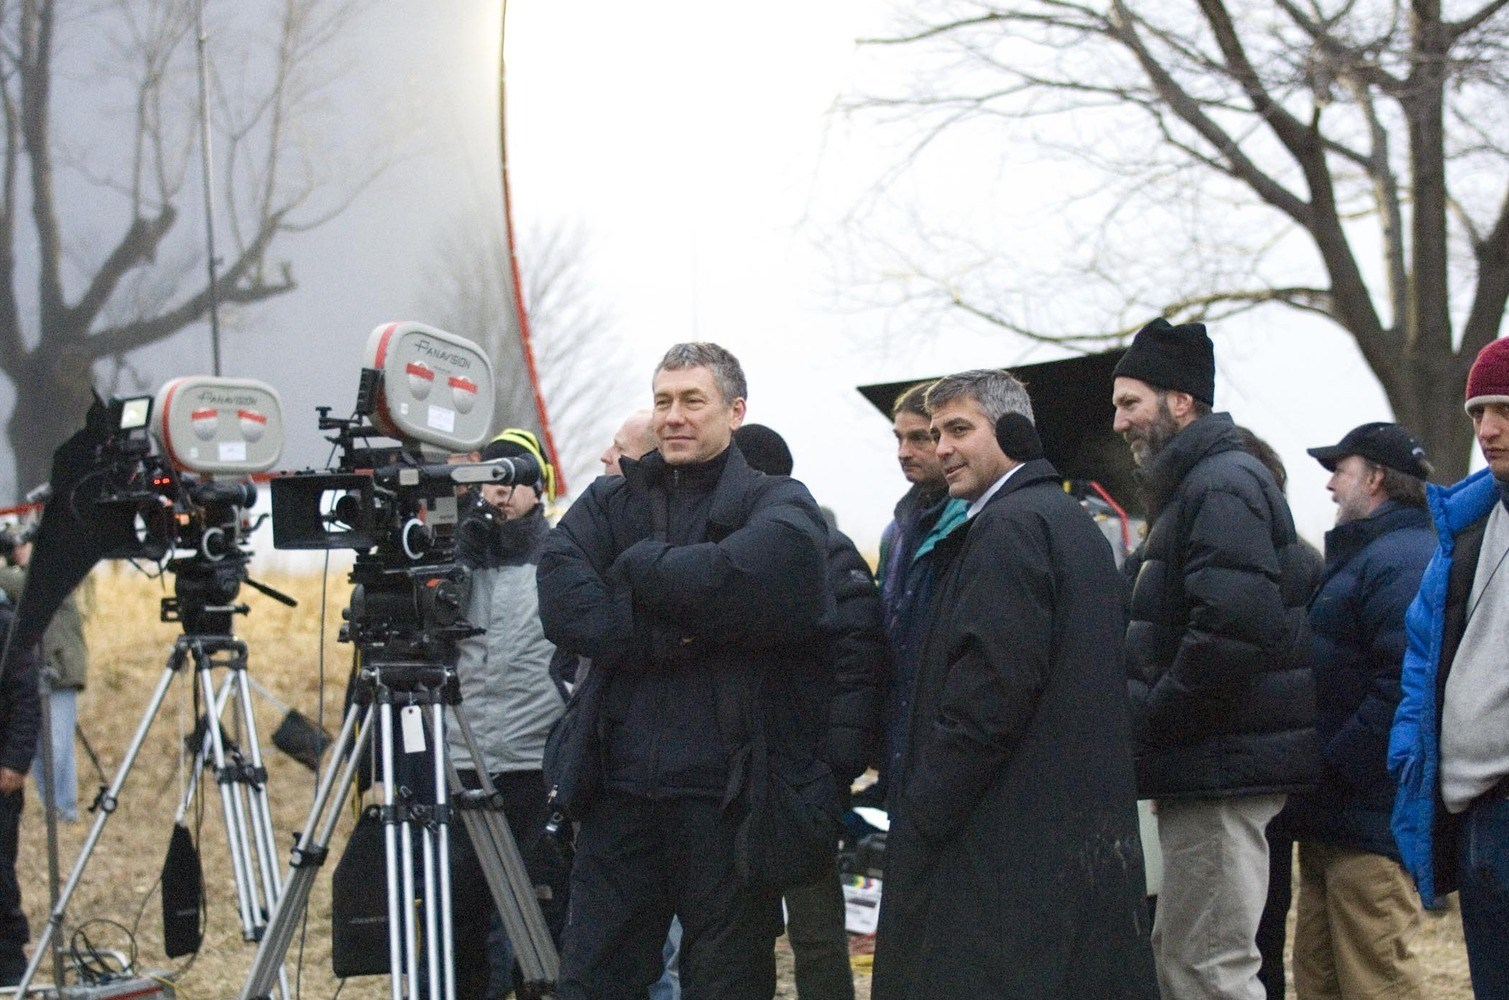 On Location : Michael Clayton (2007) Behind the Scenes